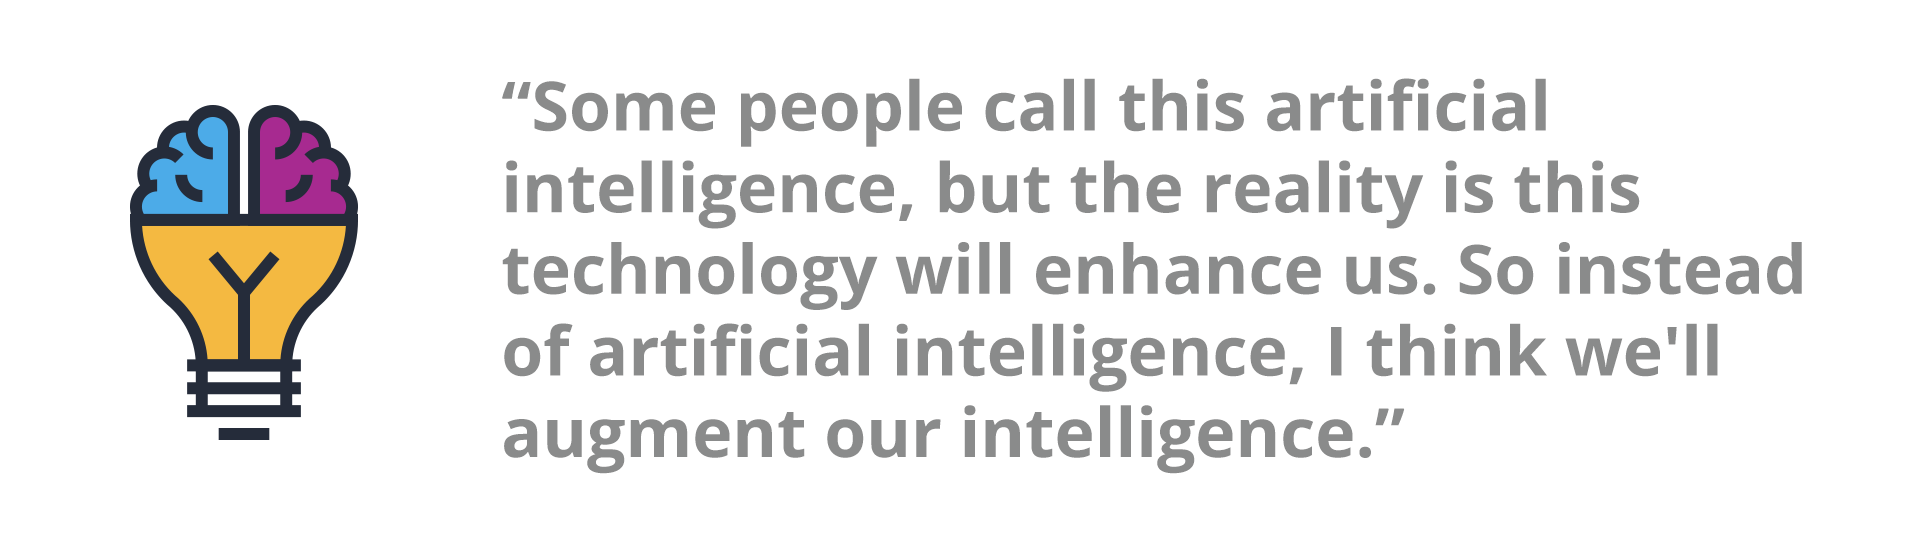 https://www.forbes.com/sites/bernardmarr/2017/07/25/28-best-quotes-about-artificial-intelligence/